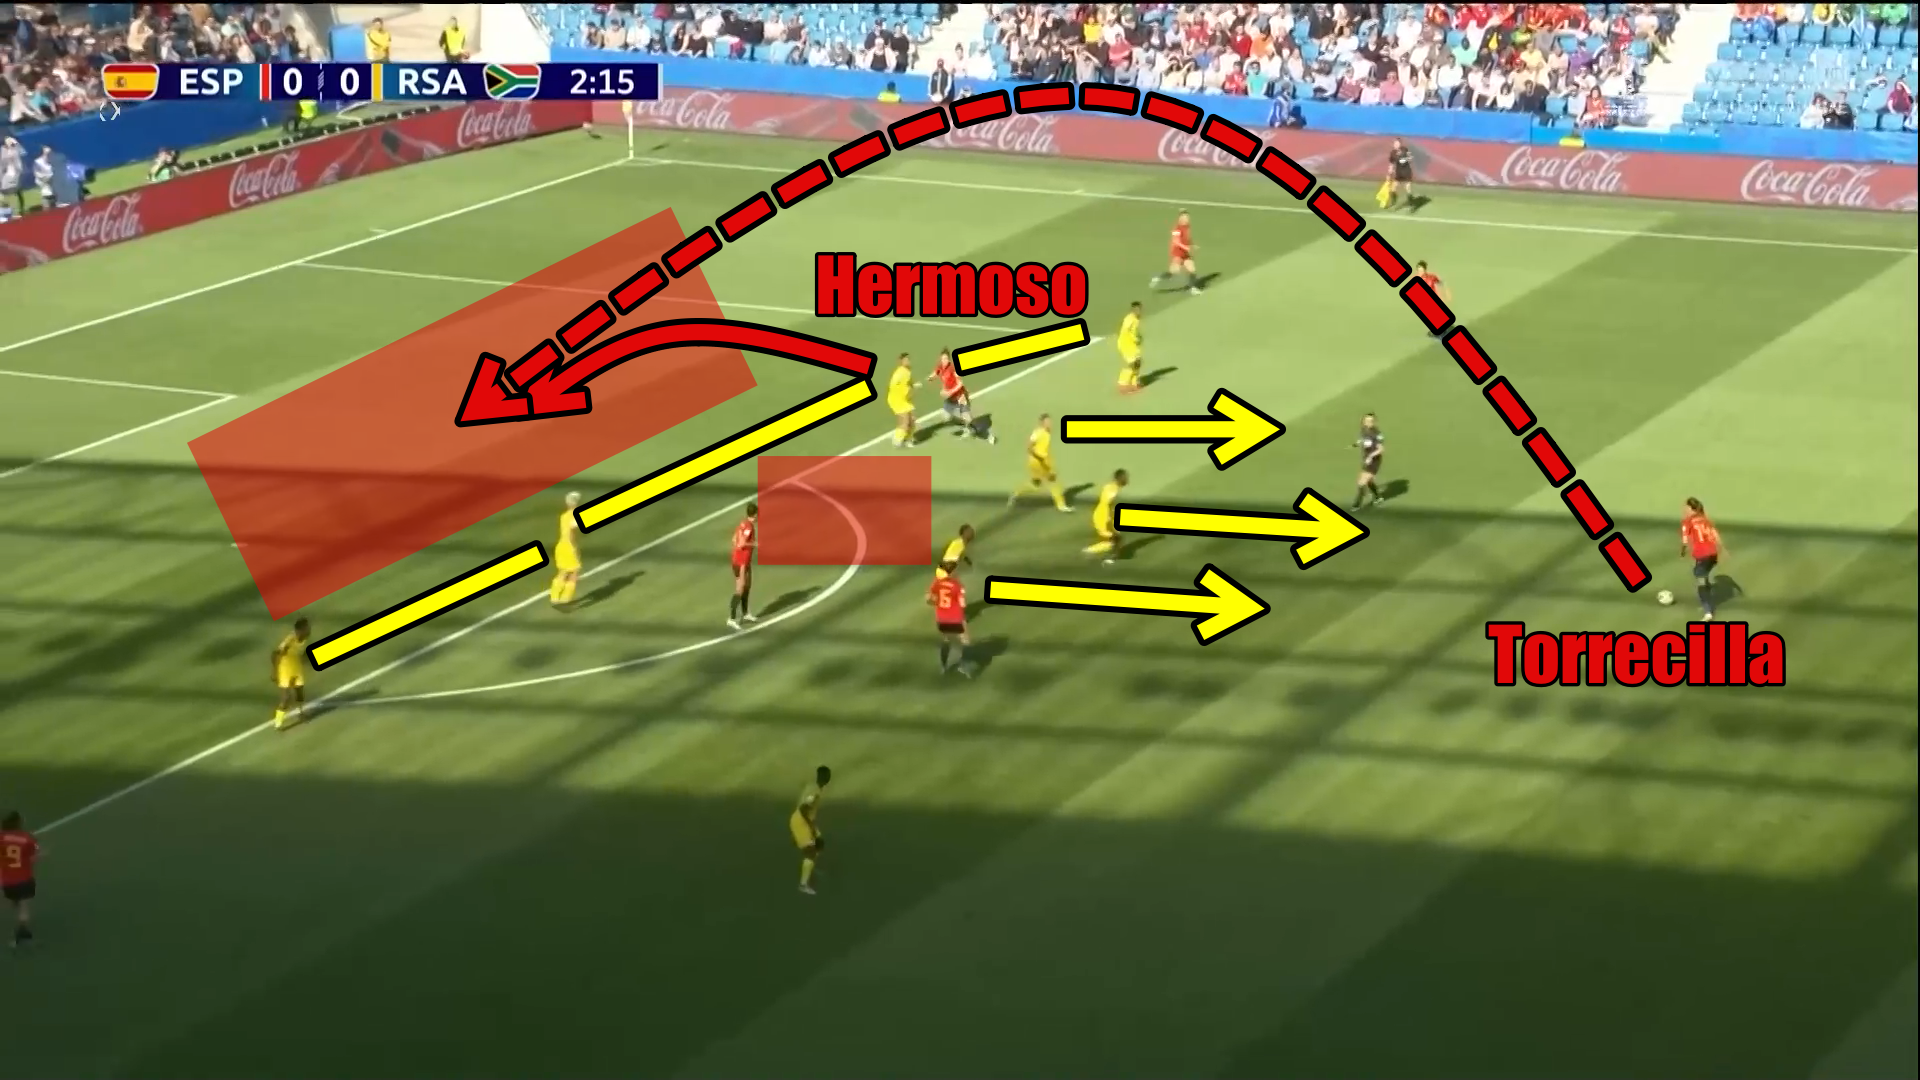 FIFA Women's World Cup 2019 Tactical Analysis: Spain vs South Africa